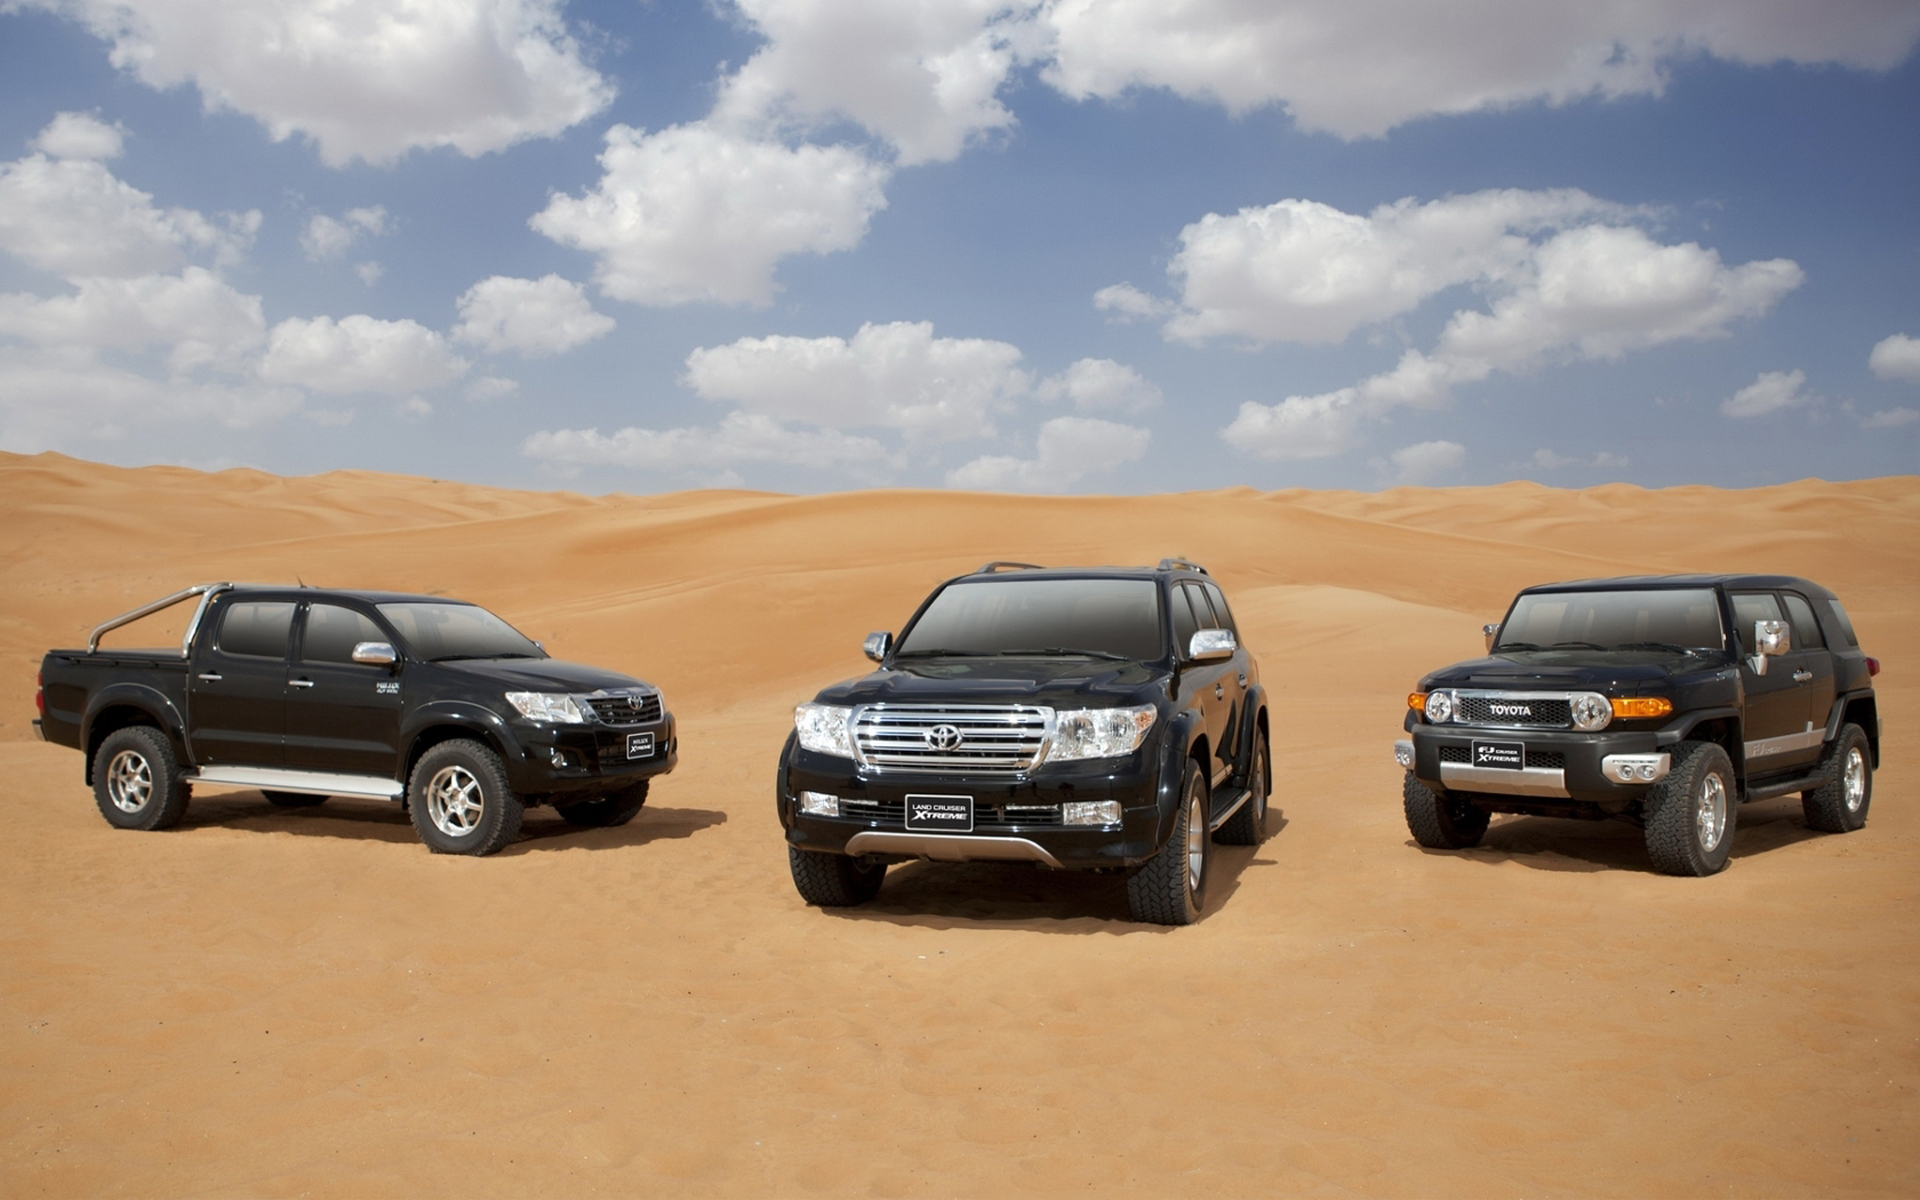 Toyota full hd wallpaper and background image 1920x1200 - Land cruiser hd wallpaper ...